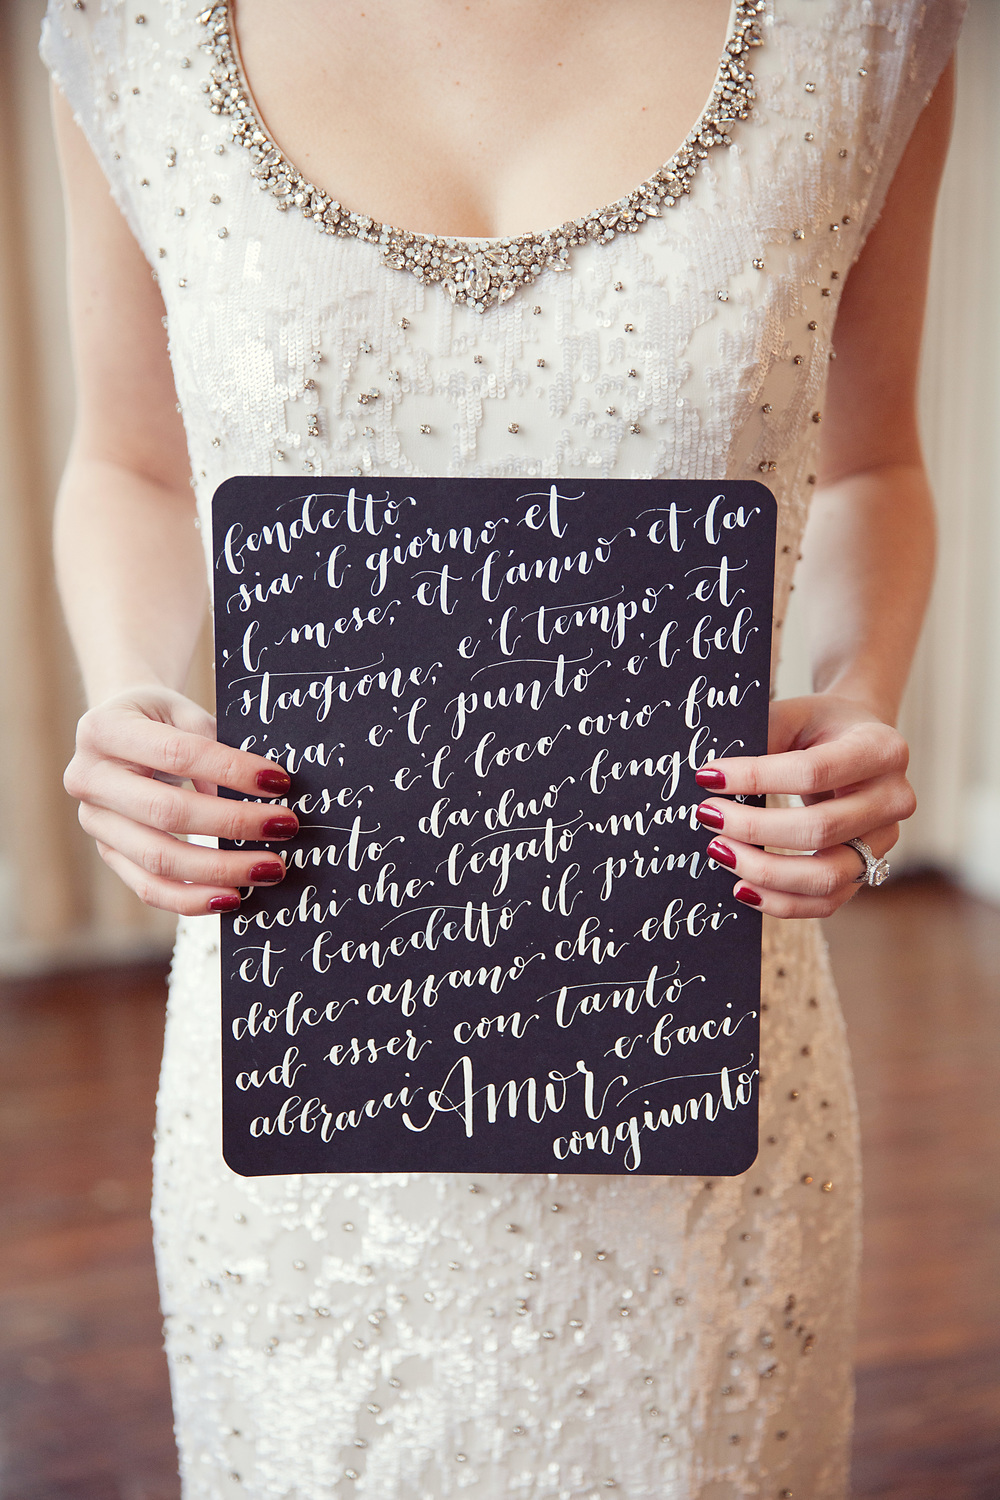 Italian Valentine Poem | Sarah Kate Photo | Stems of Dallas | Natalie Grace Calligraphy Co.